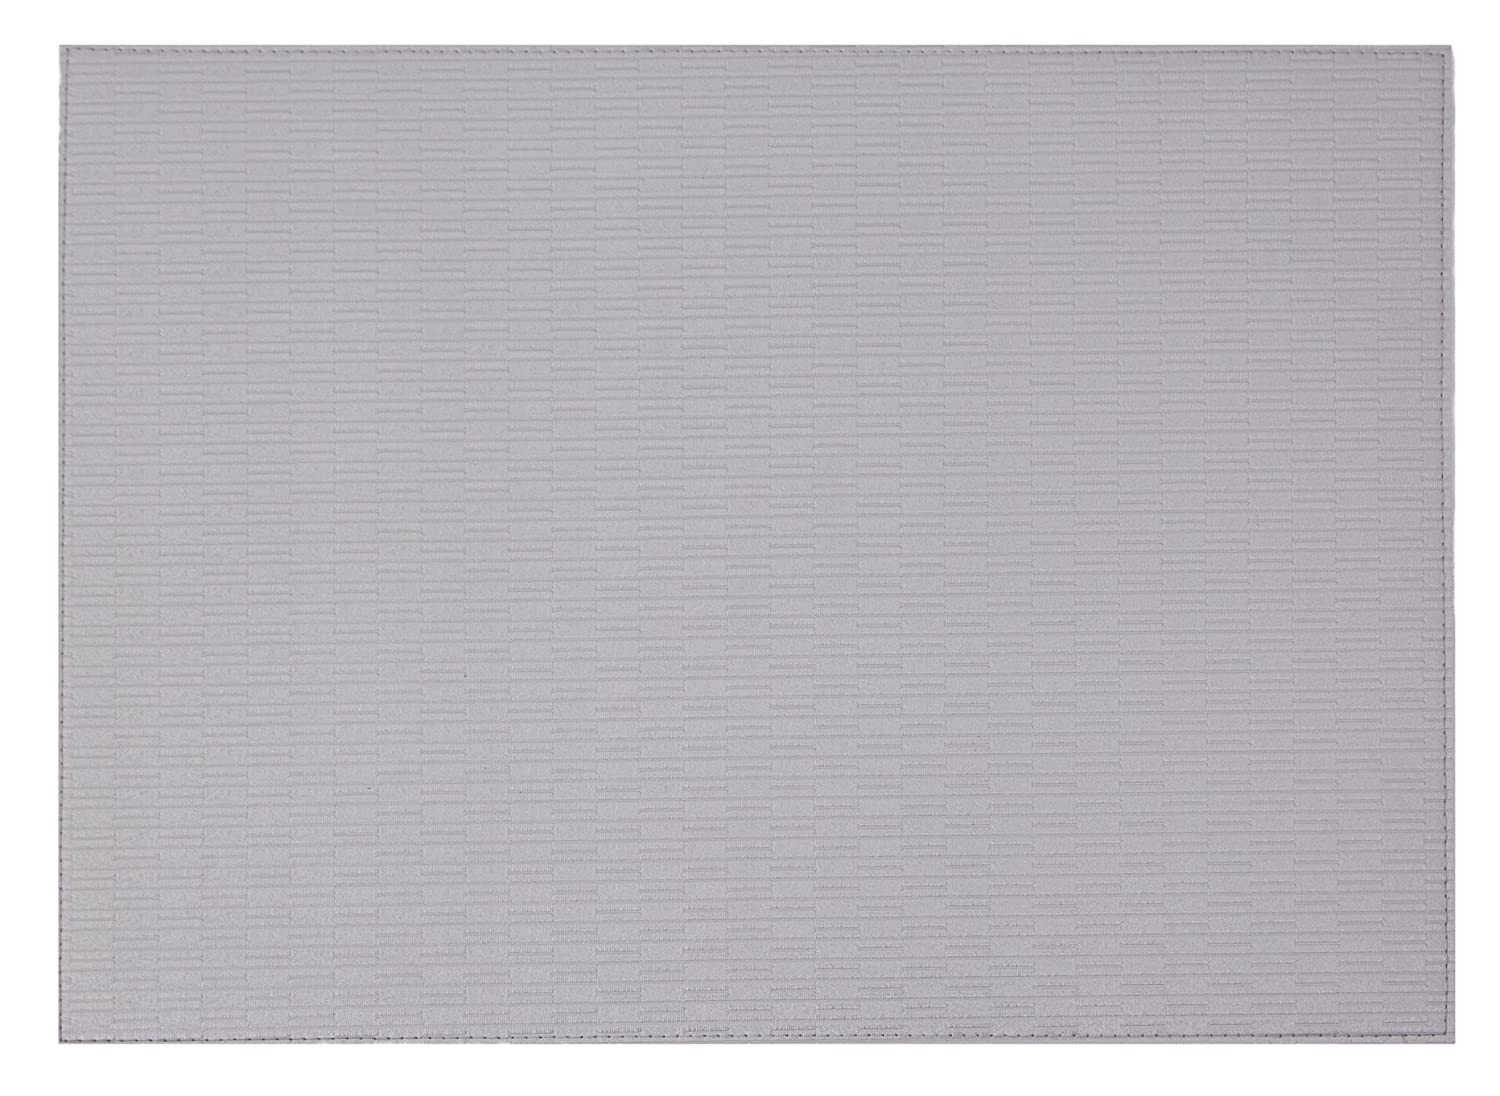 Set of 6 Blue Grey 13X18 Wintop Ribbed Faux Leather Placemats